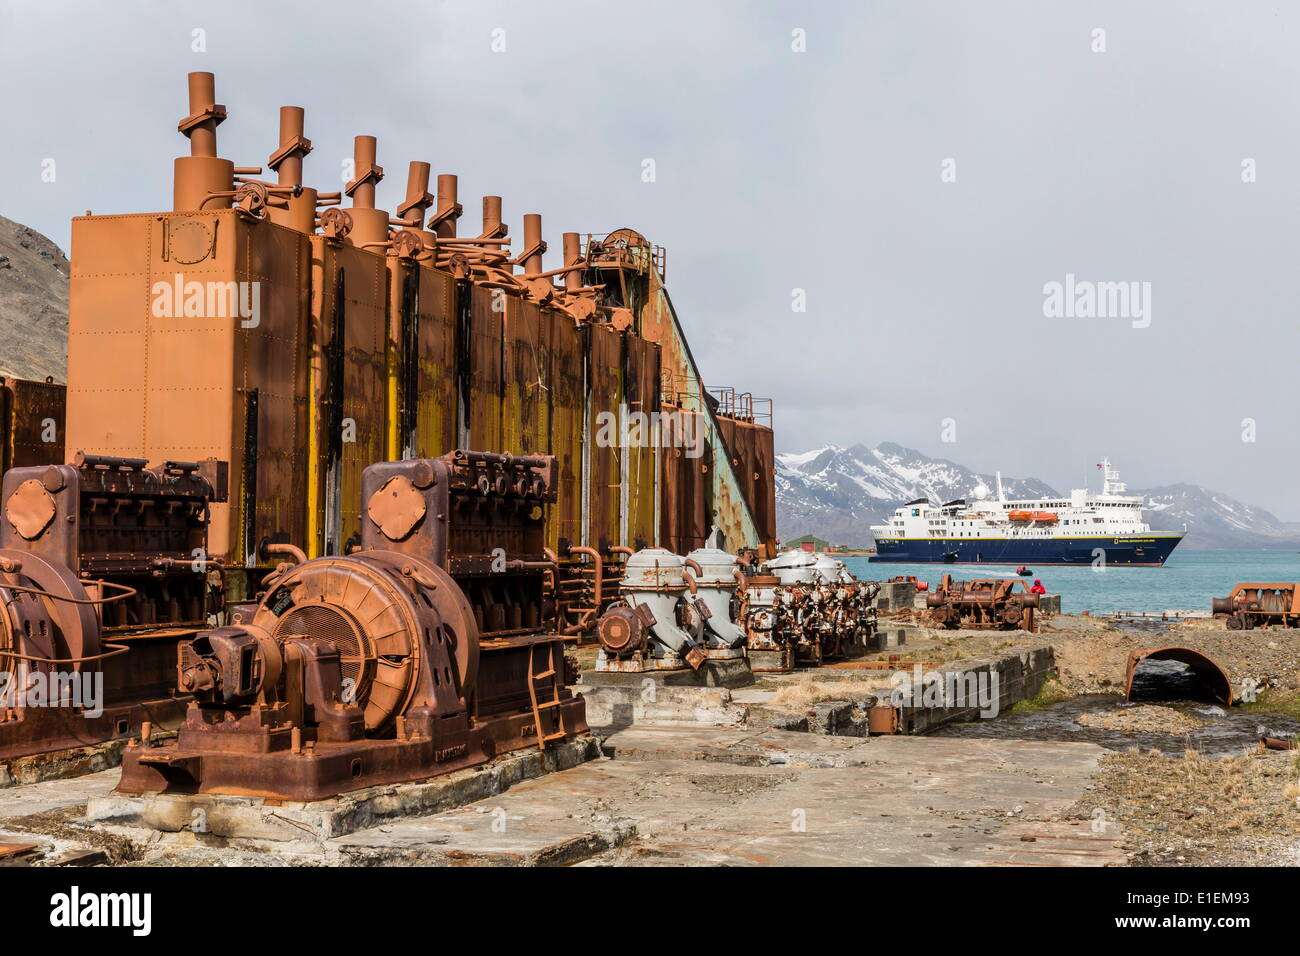 The Lindblad Expeditions ship National Geographic Explorer at the abandoned whaling station in Grytviken, South Georgia - Stock Image